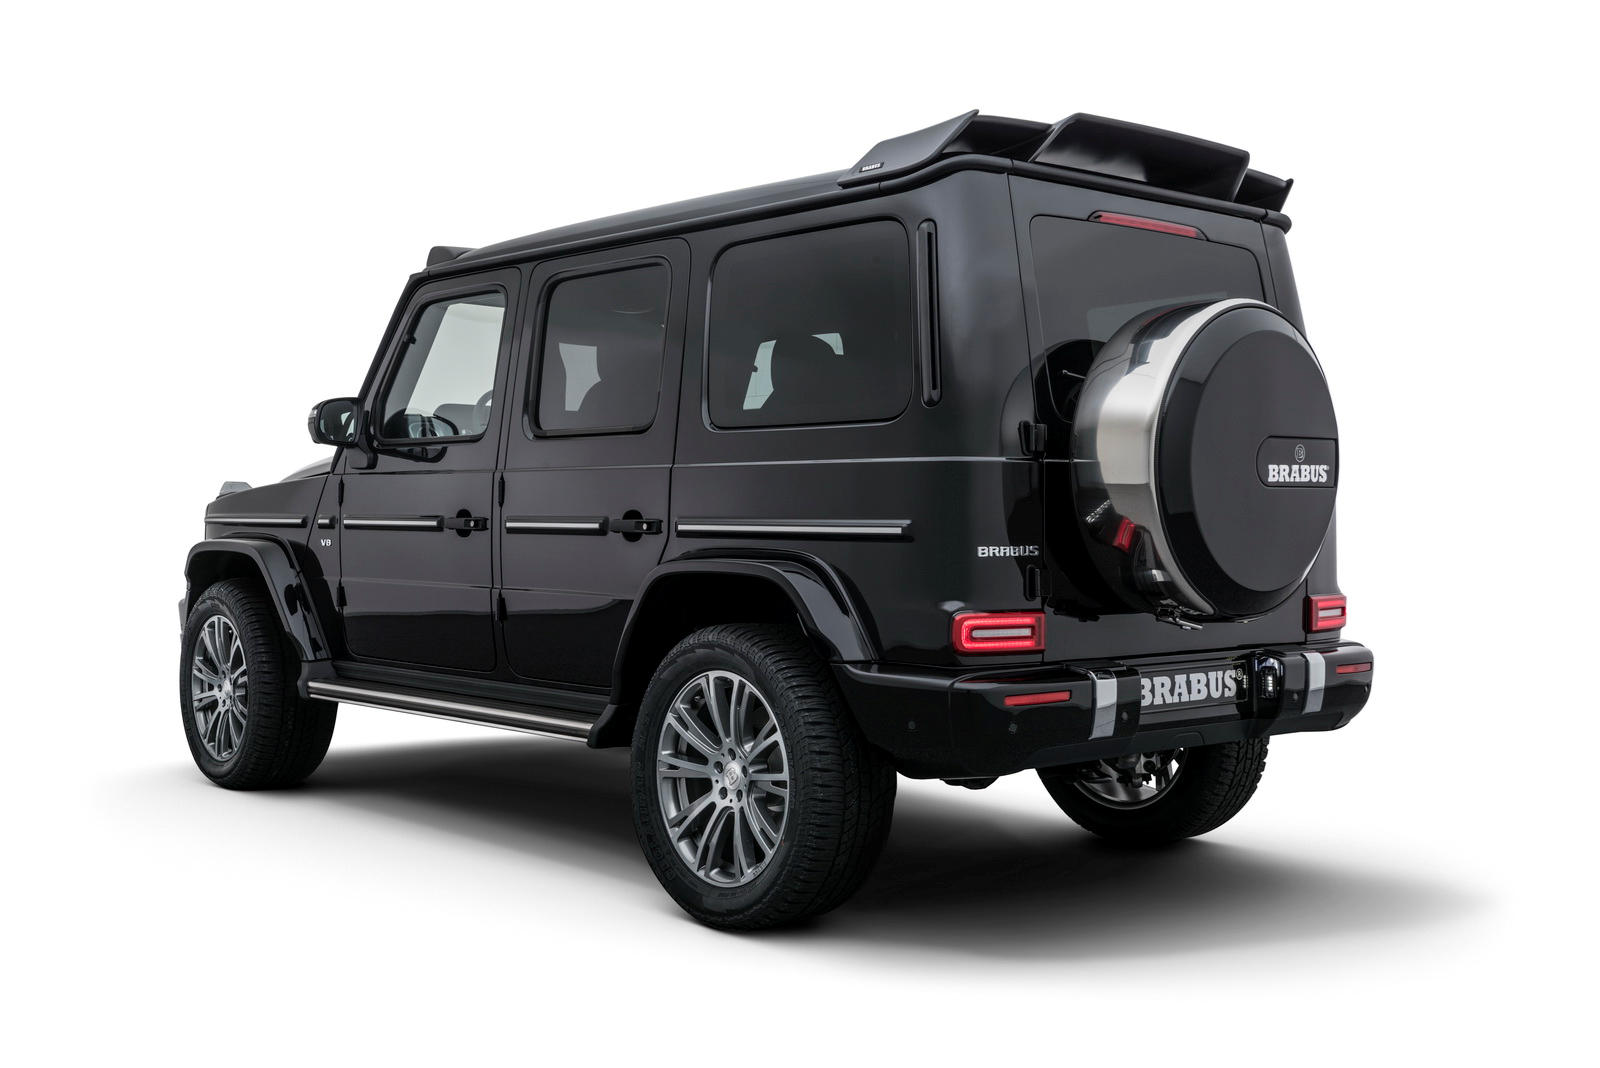 brabus tunes the 2019 mercedes benz g class to nearly 500 hp. Black Bedroom Furniture Sets. Home Design Ideas